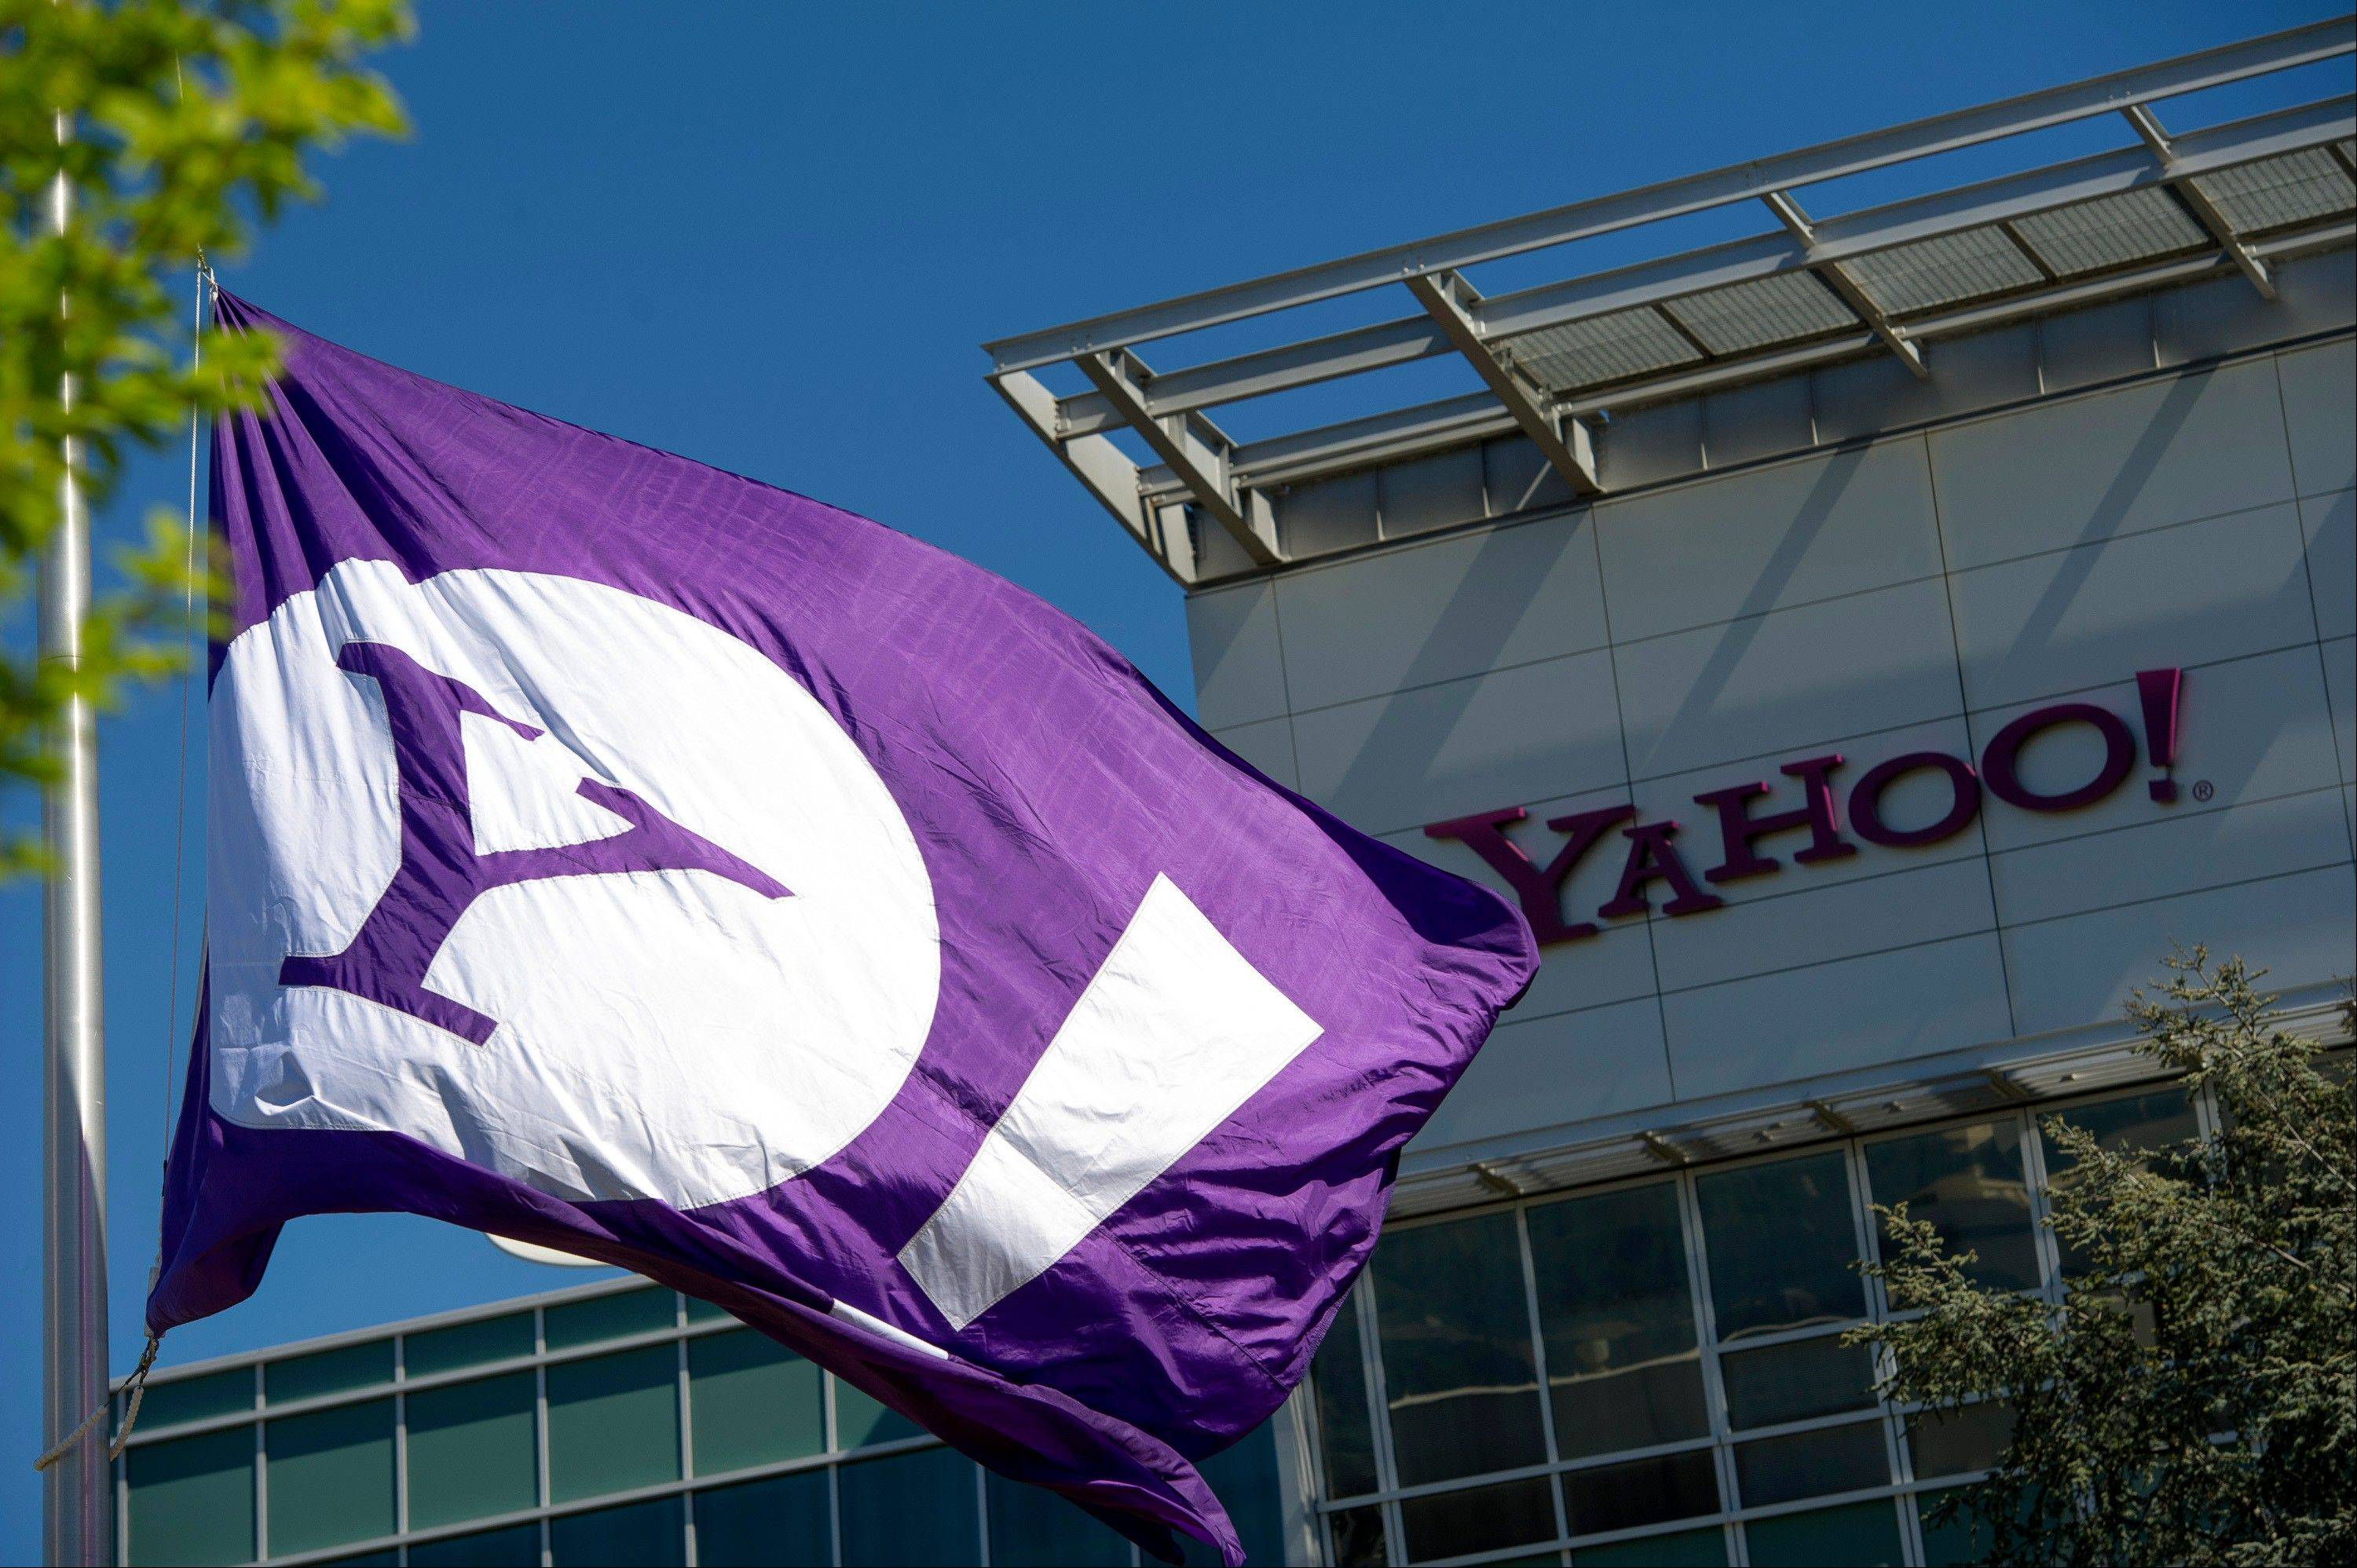 The Yahoo! Inc. logo is displayed on a flag flying at the company's headquarters in Sunnyvale, California, U.S., on Tuesday, April 16, 2013. Yahoo! Inc., the biggest U.S. Web portal, forecast sales that fell short of analystsí estimates as it continued to lose advertisers to Google Inc. and Facebook Inc. Photographer: David Paul Morris/Bloomberg